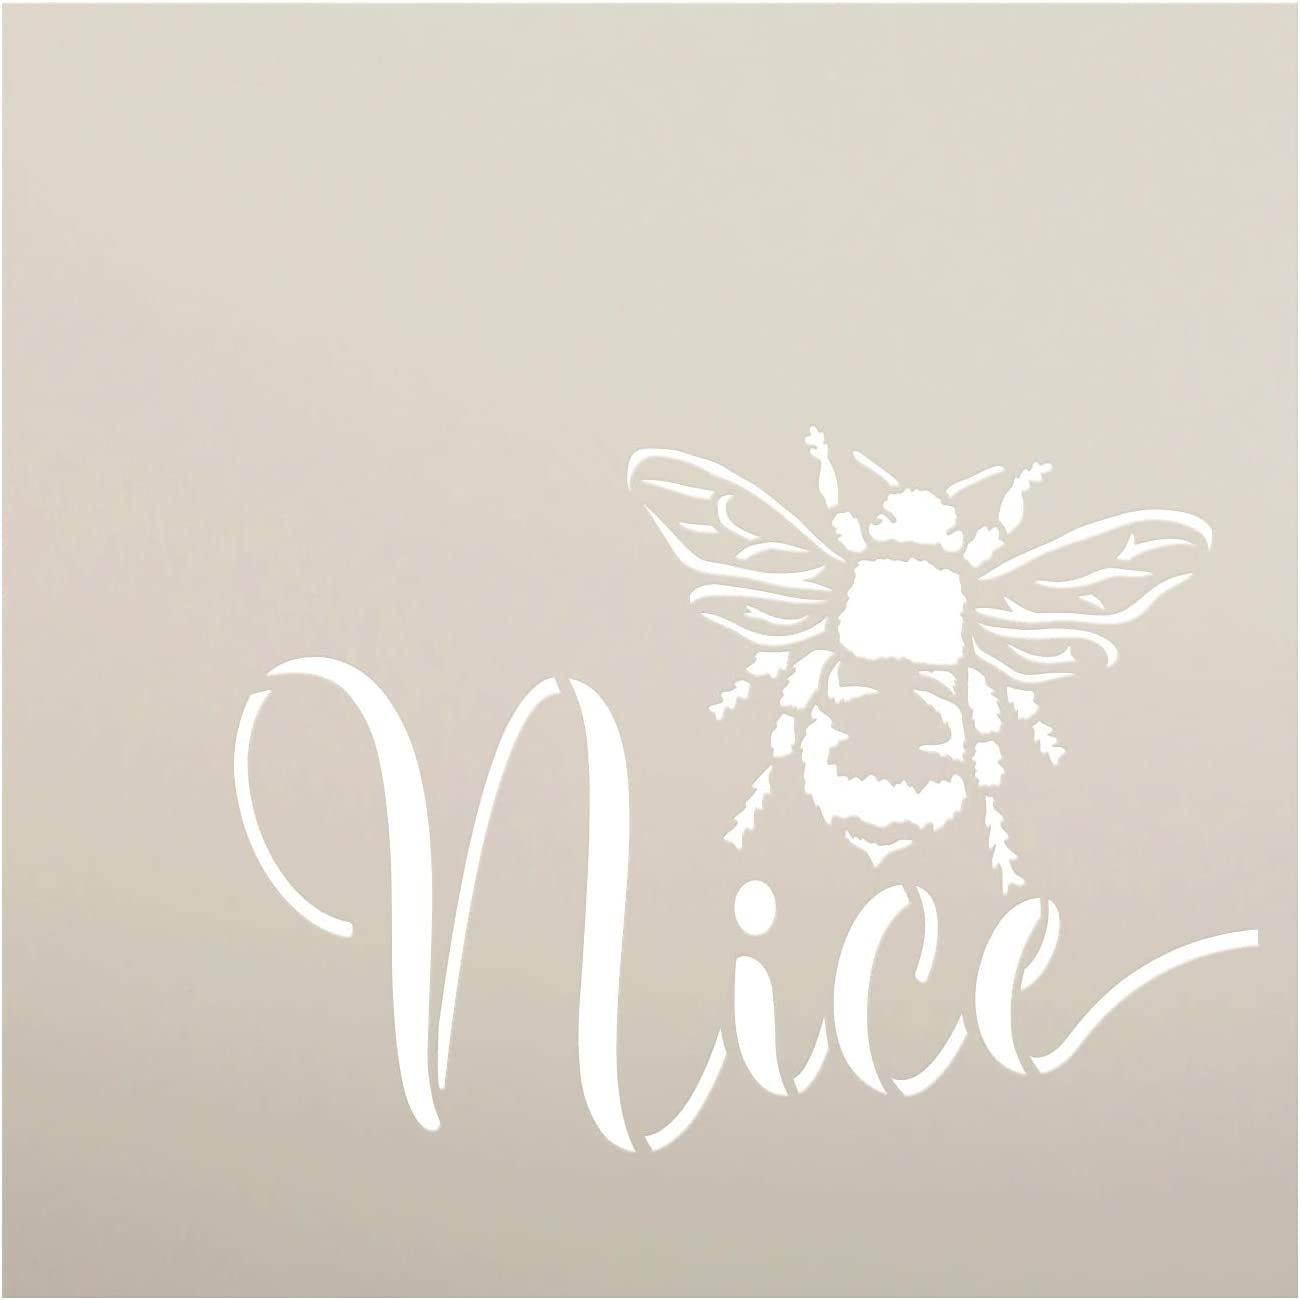 Bee Nice Stencil by StudioR12 | DIY Farmhouse Bumblebee Home & Classroom Decor | Spring Inspirational Script Word Art | Craft & Paint Wood Signs | Reusable Mylar Template | Select Size (9 x 9 inch)